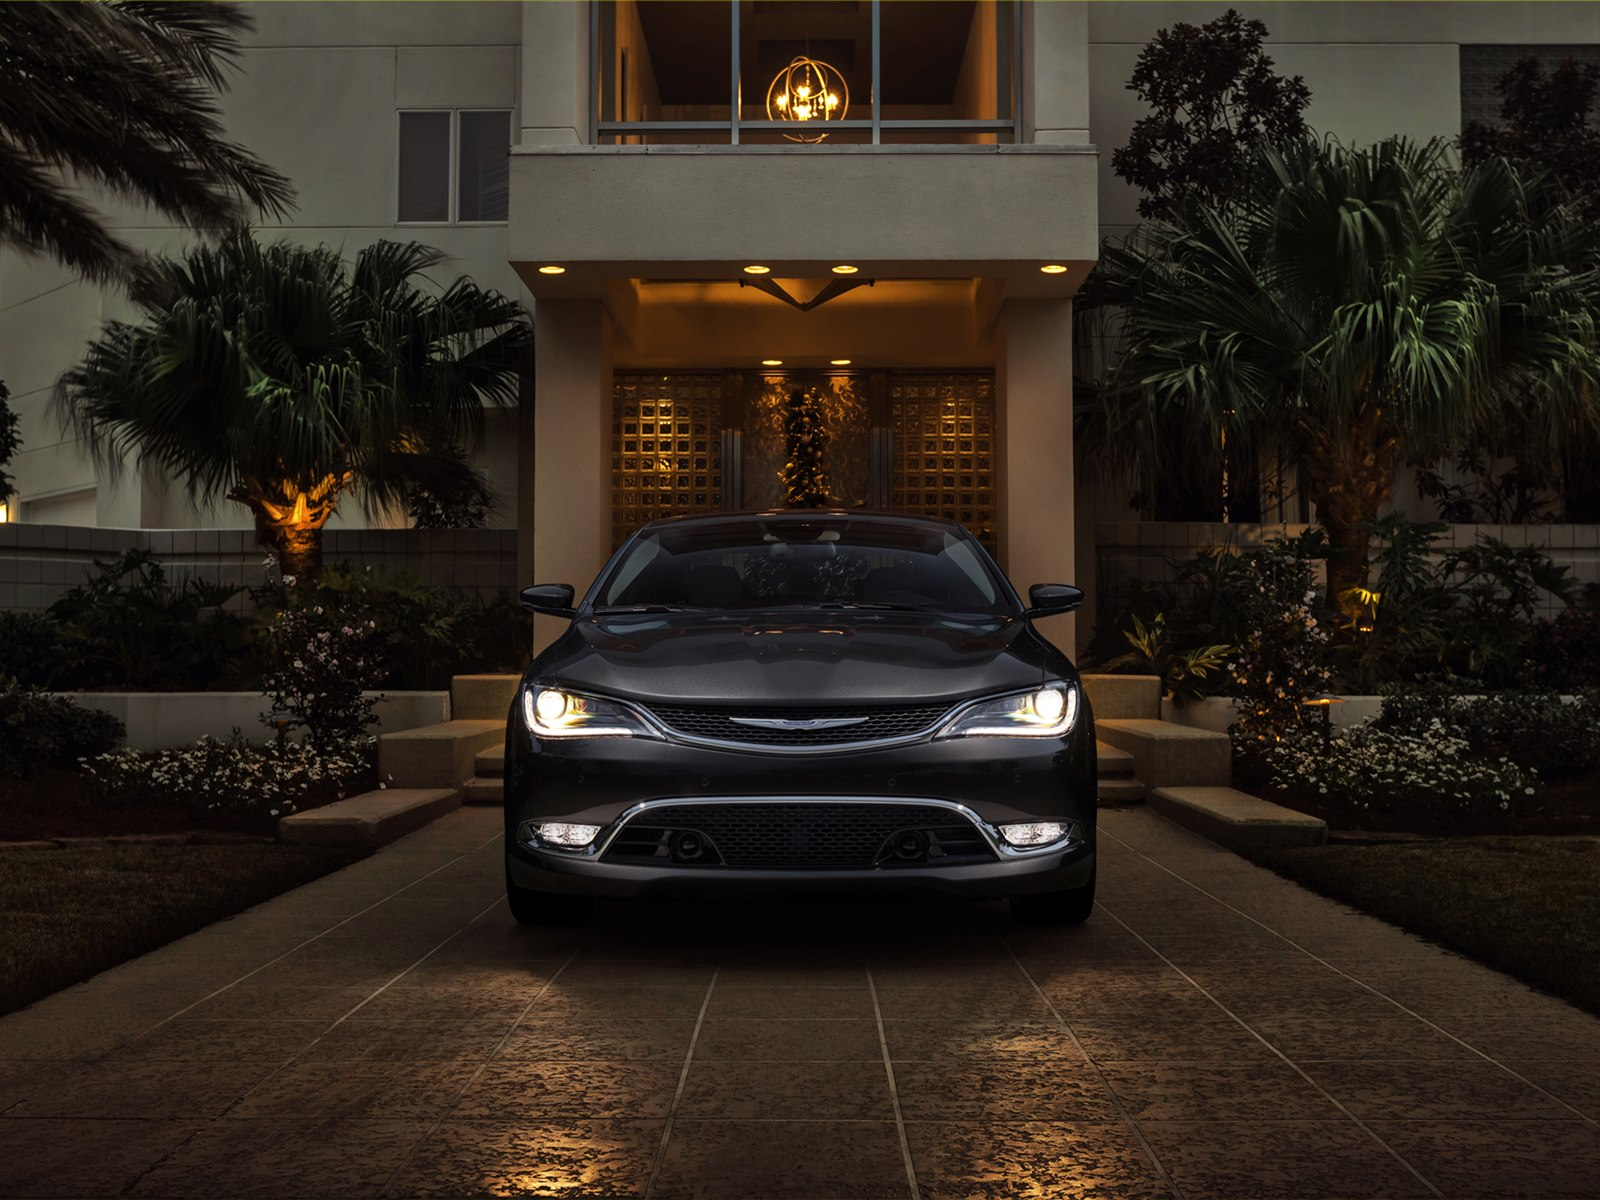 2015 Chrysler 200 Front End (View 7 of 11)